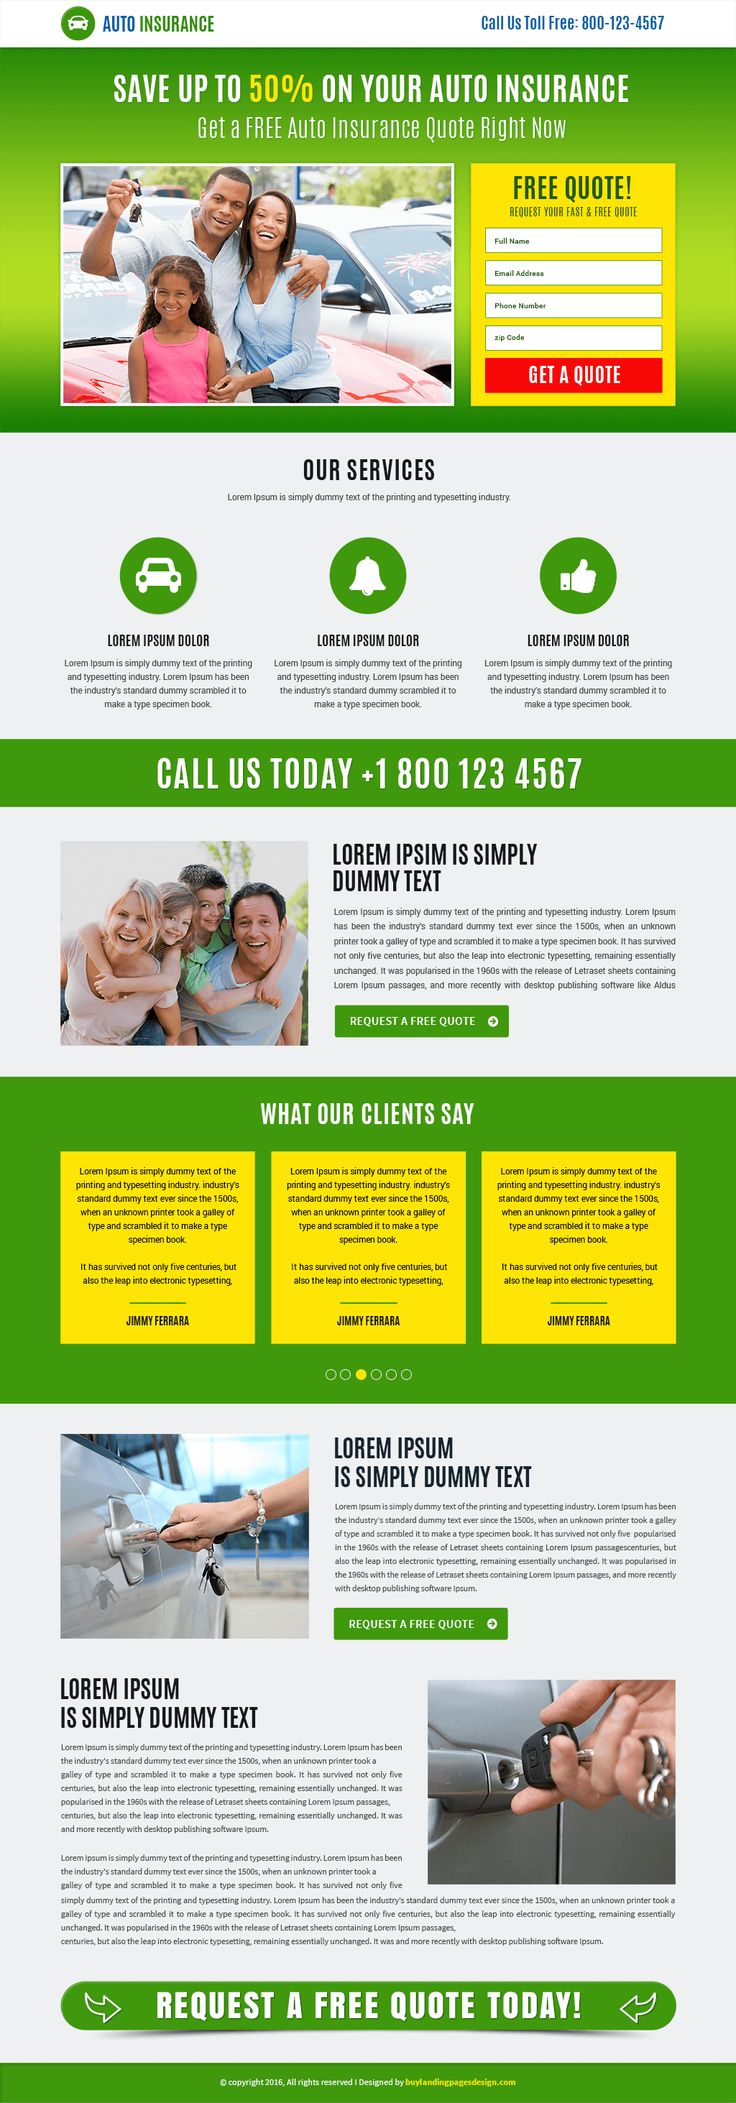 Auto insurance services responsive landing page template